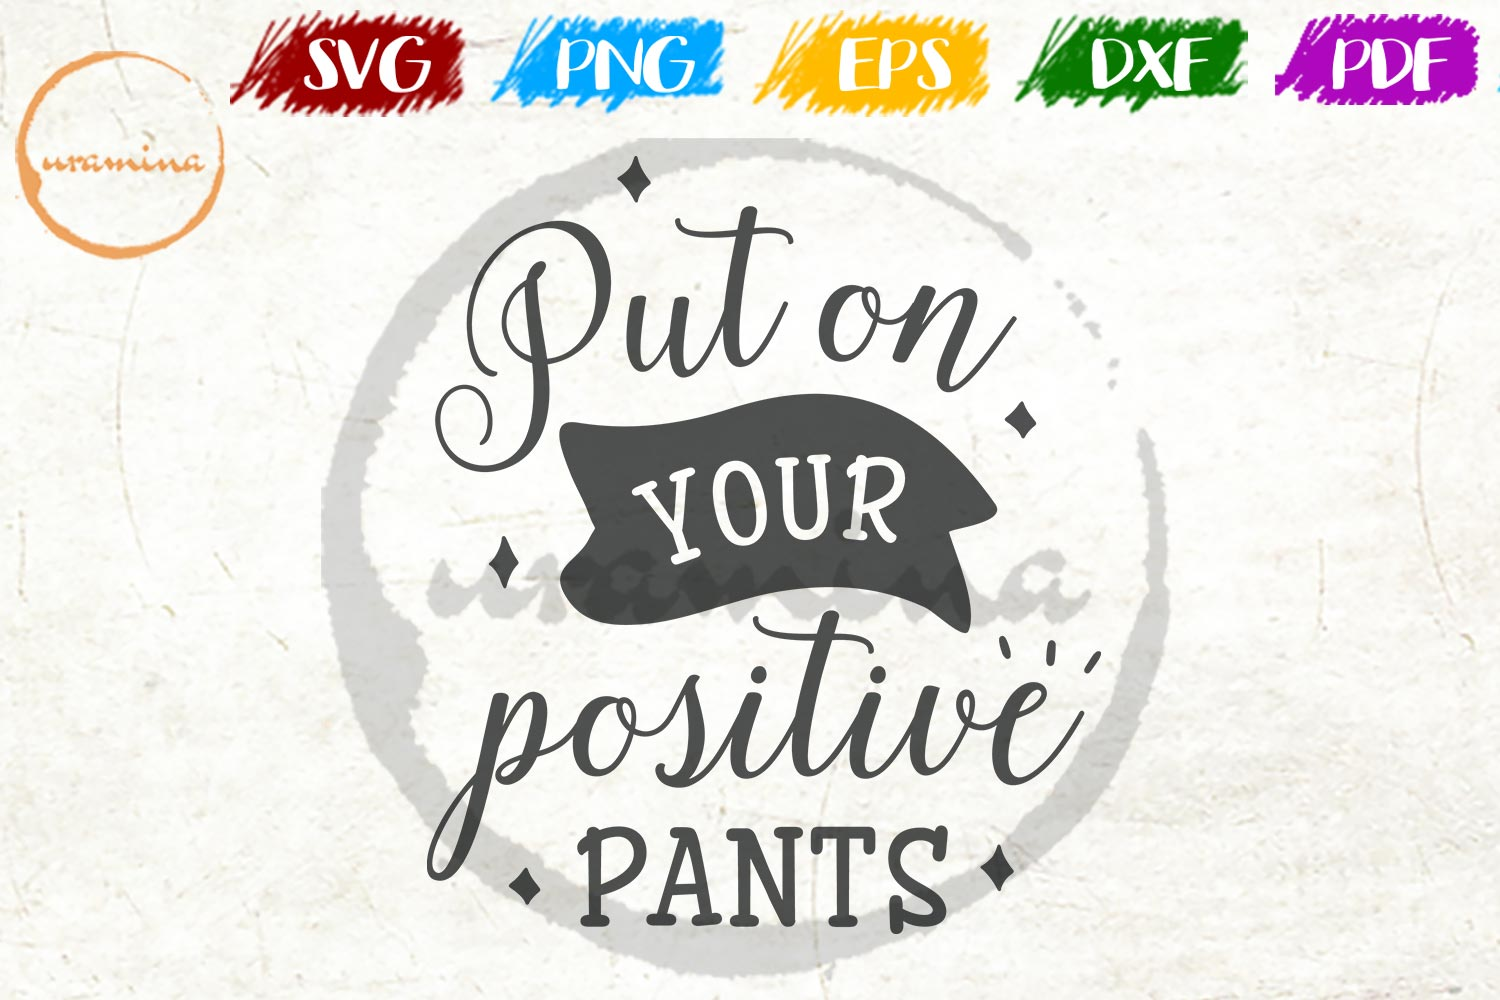 Download Free Put On Your Positive Pants Graphic By Uramina Creative Fabrica for Cricut Explore, Silhouette and other cutting machines.